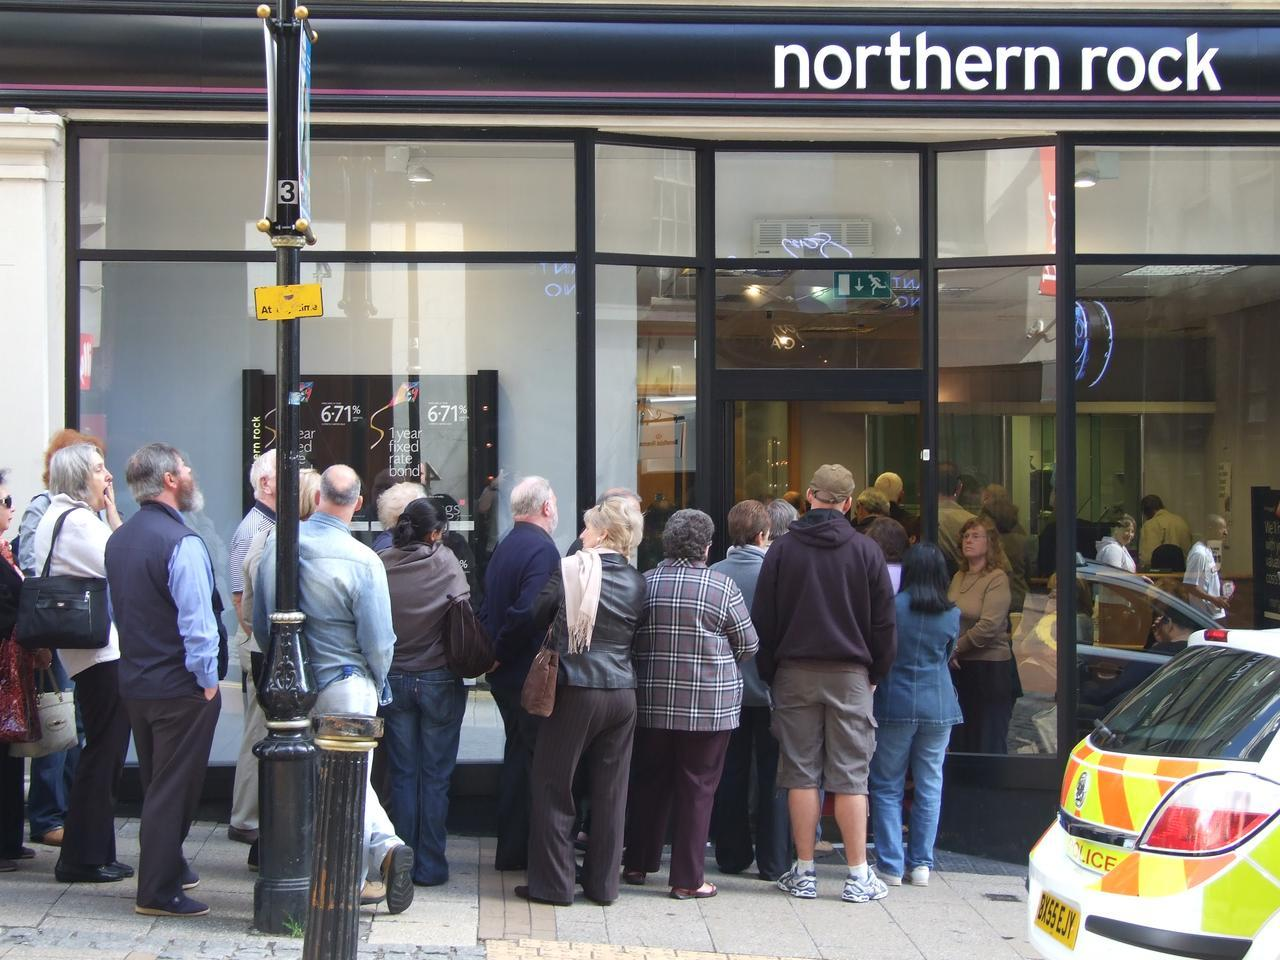 Northern Rock: an early casualty of the financial crisis